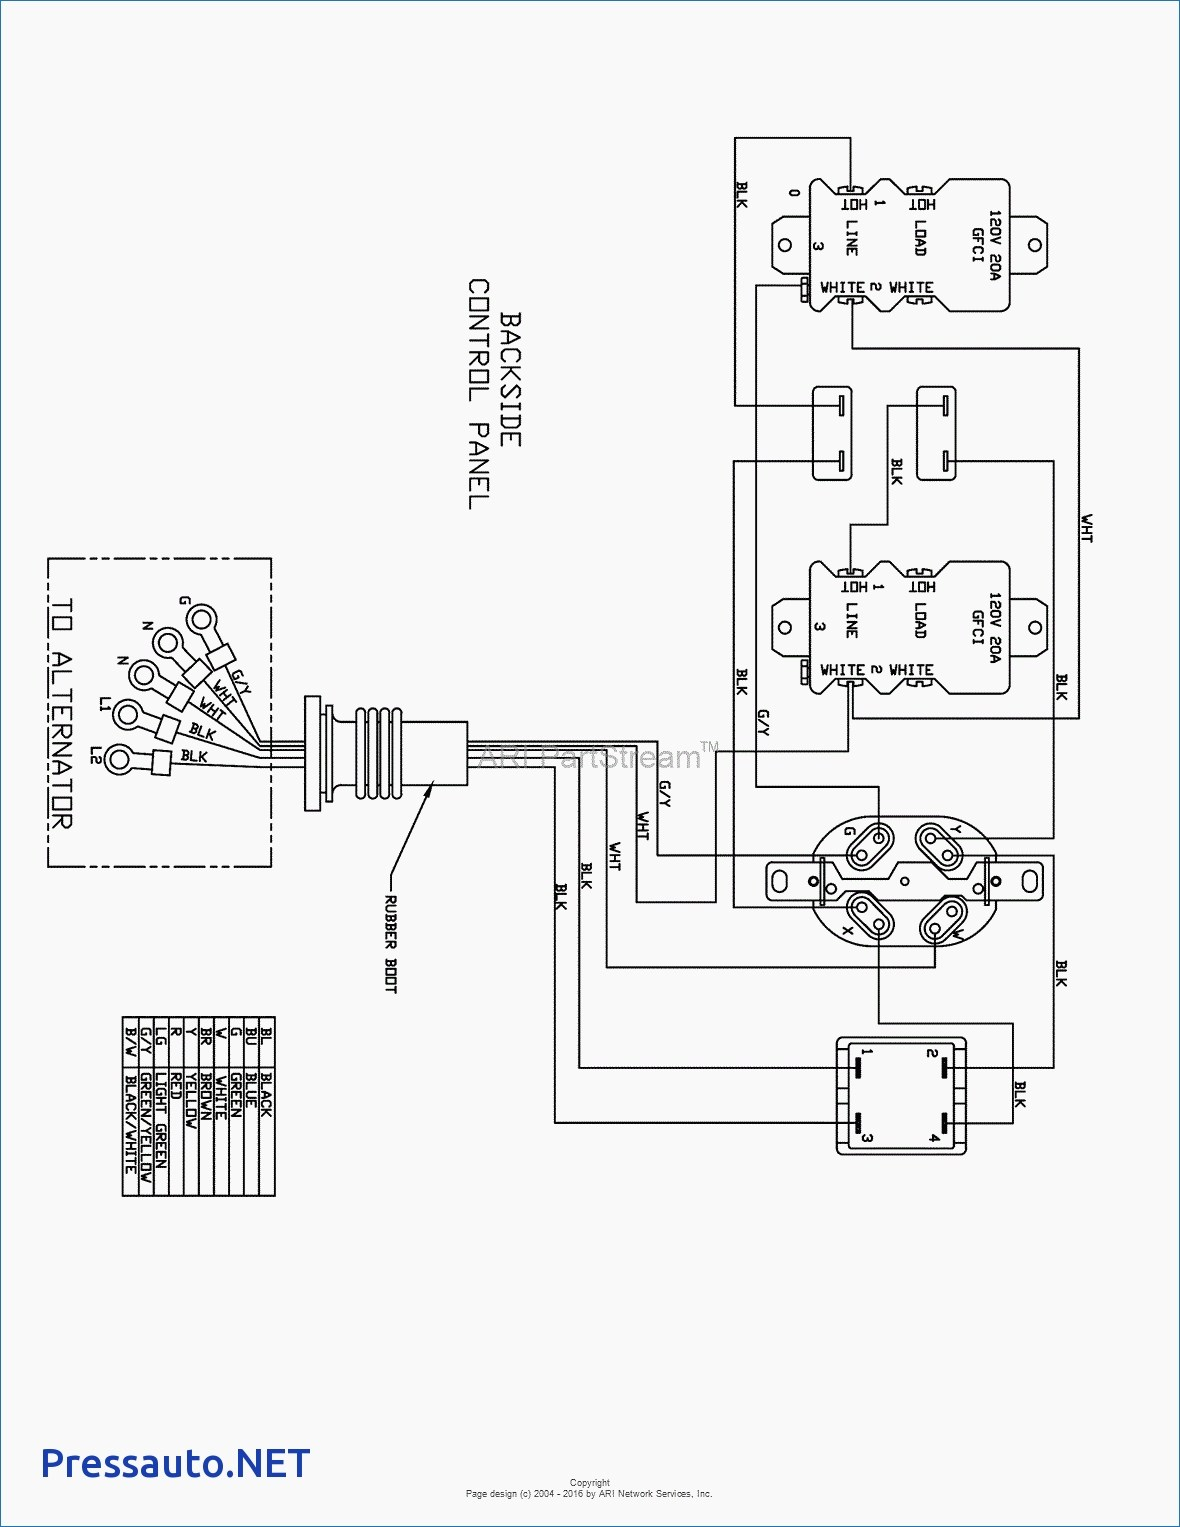 Generac Gp E Wiring Diagram Download